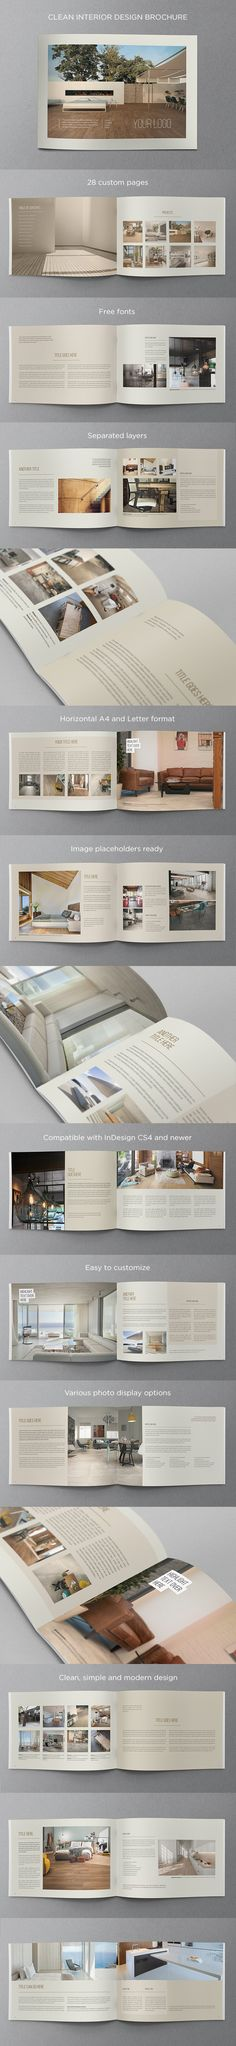 Clean Interior Design Brochure. Download here: http://graphicriver.net/item/clean-interior-design-brochure/11531896?ref=abradesign #design #brochure